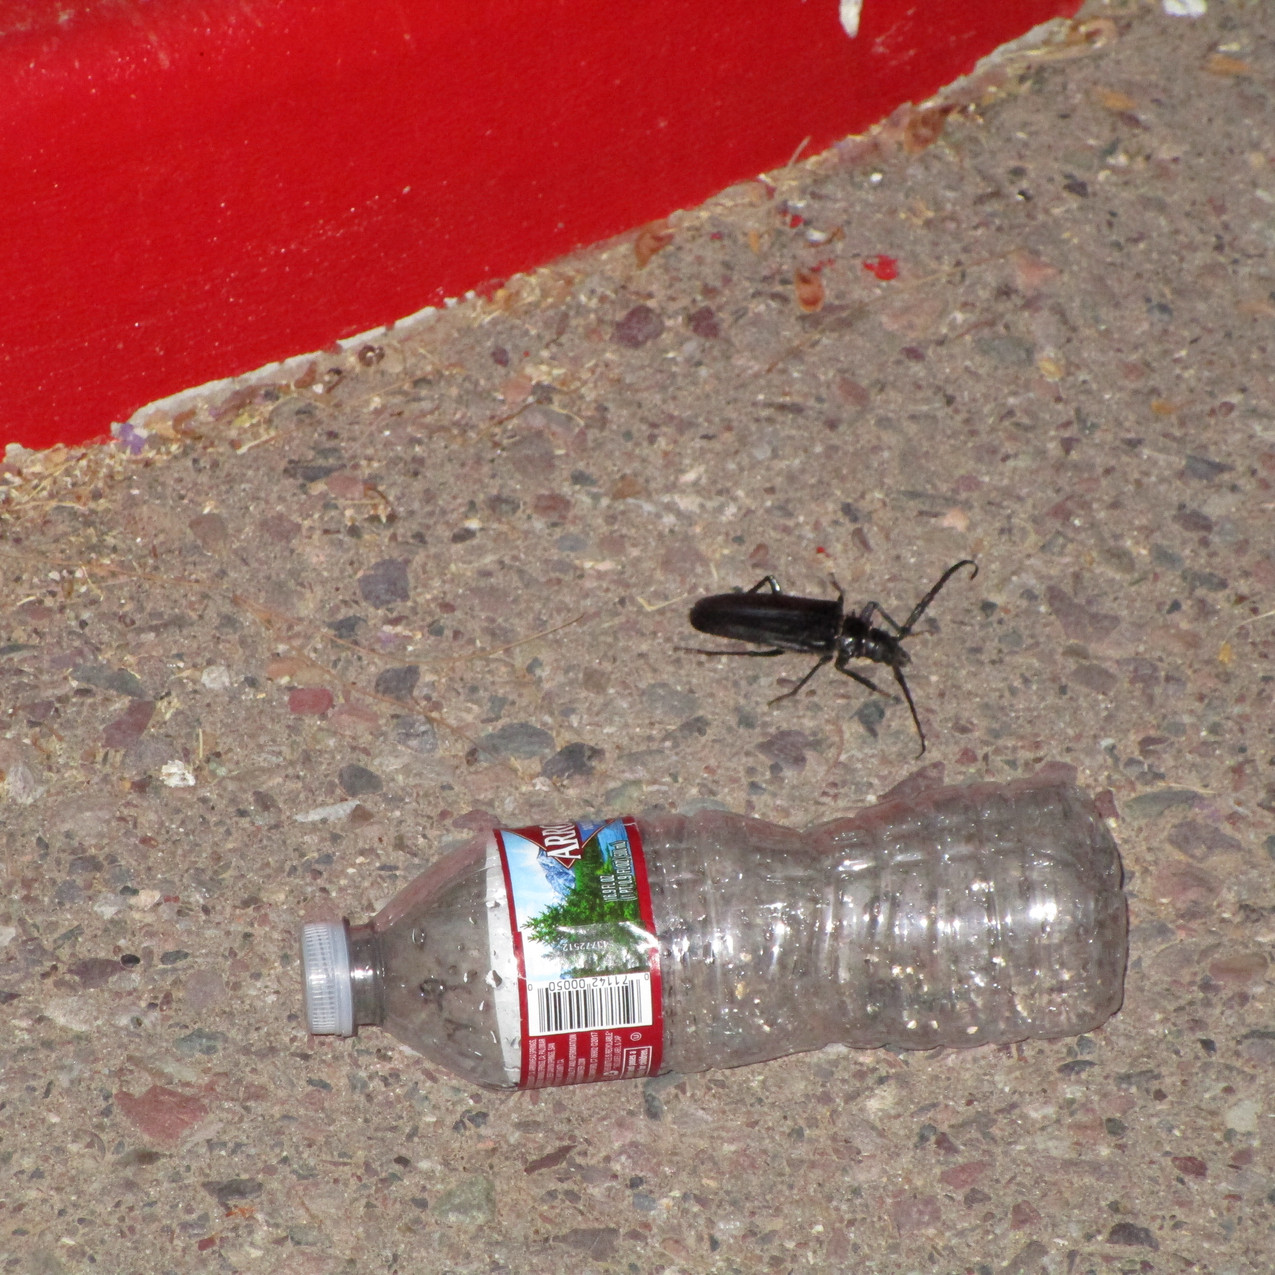 Beetle next to bottle